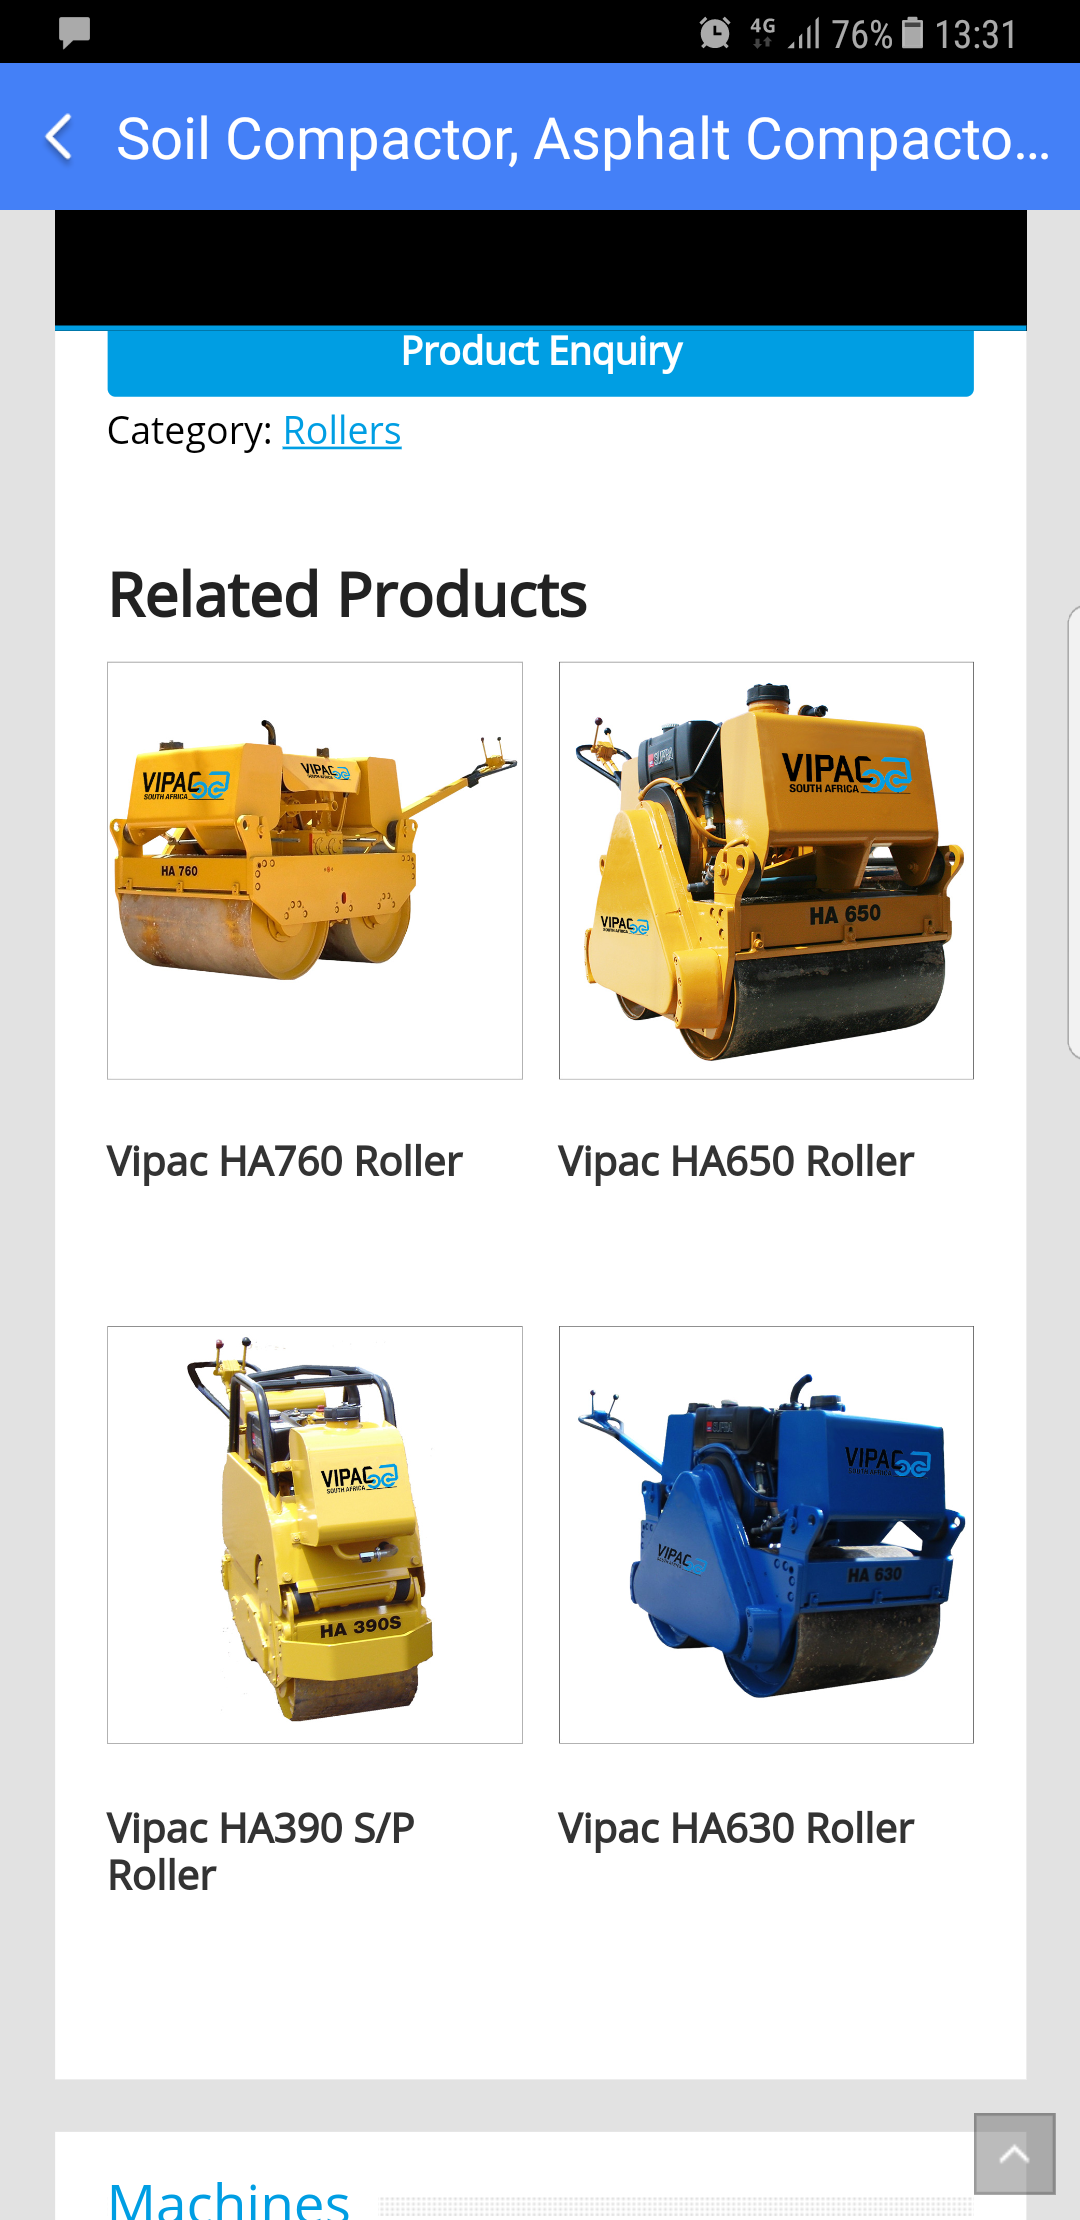 REPAIR AND MAINTENANCE OF COMPACTION MACHINES